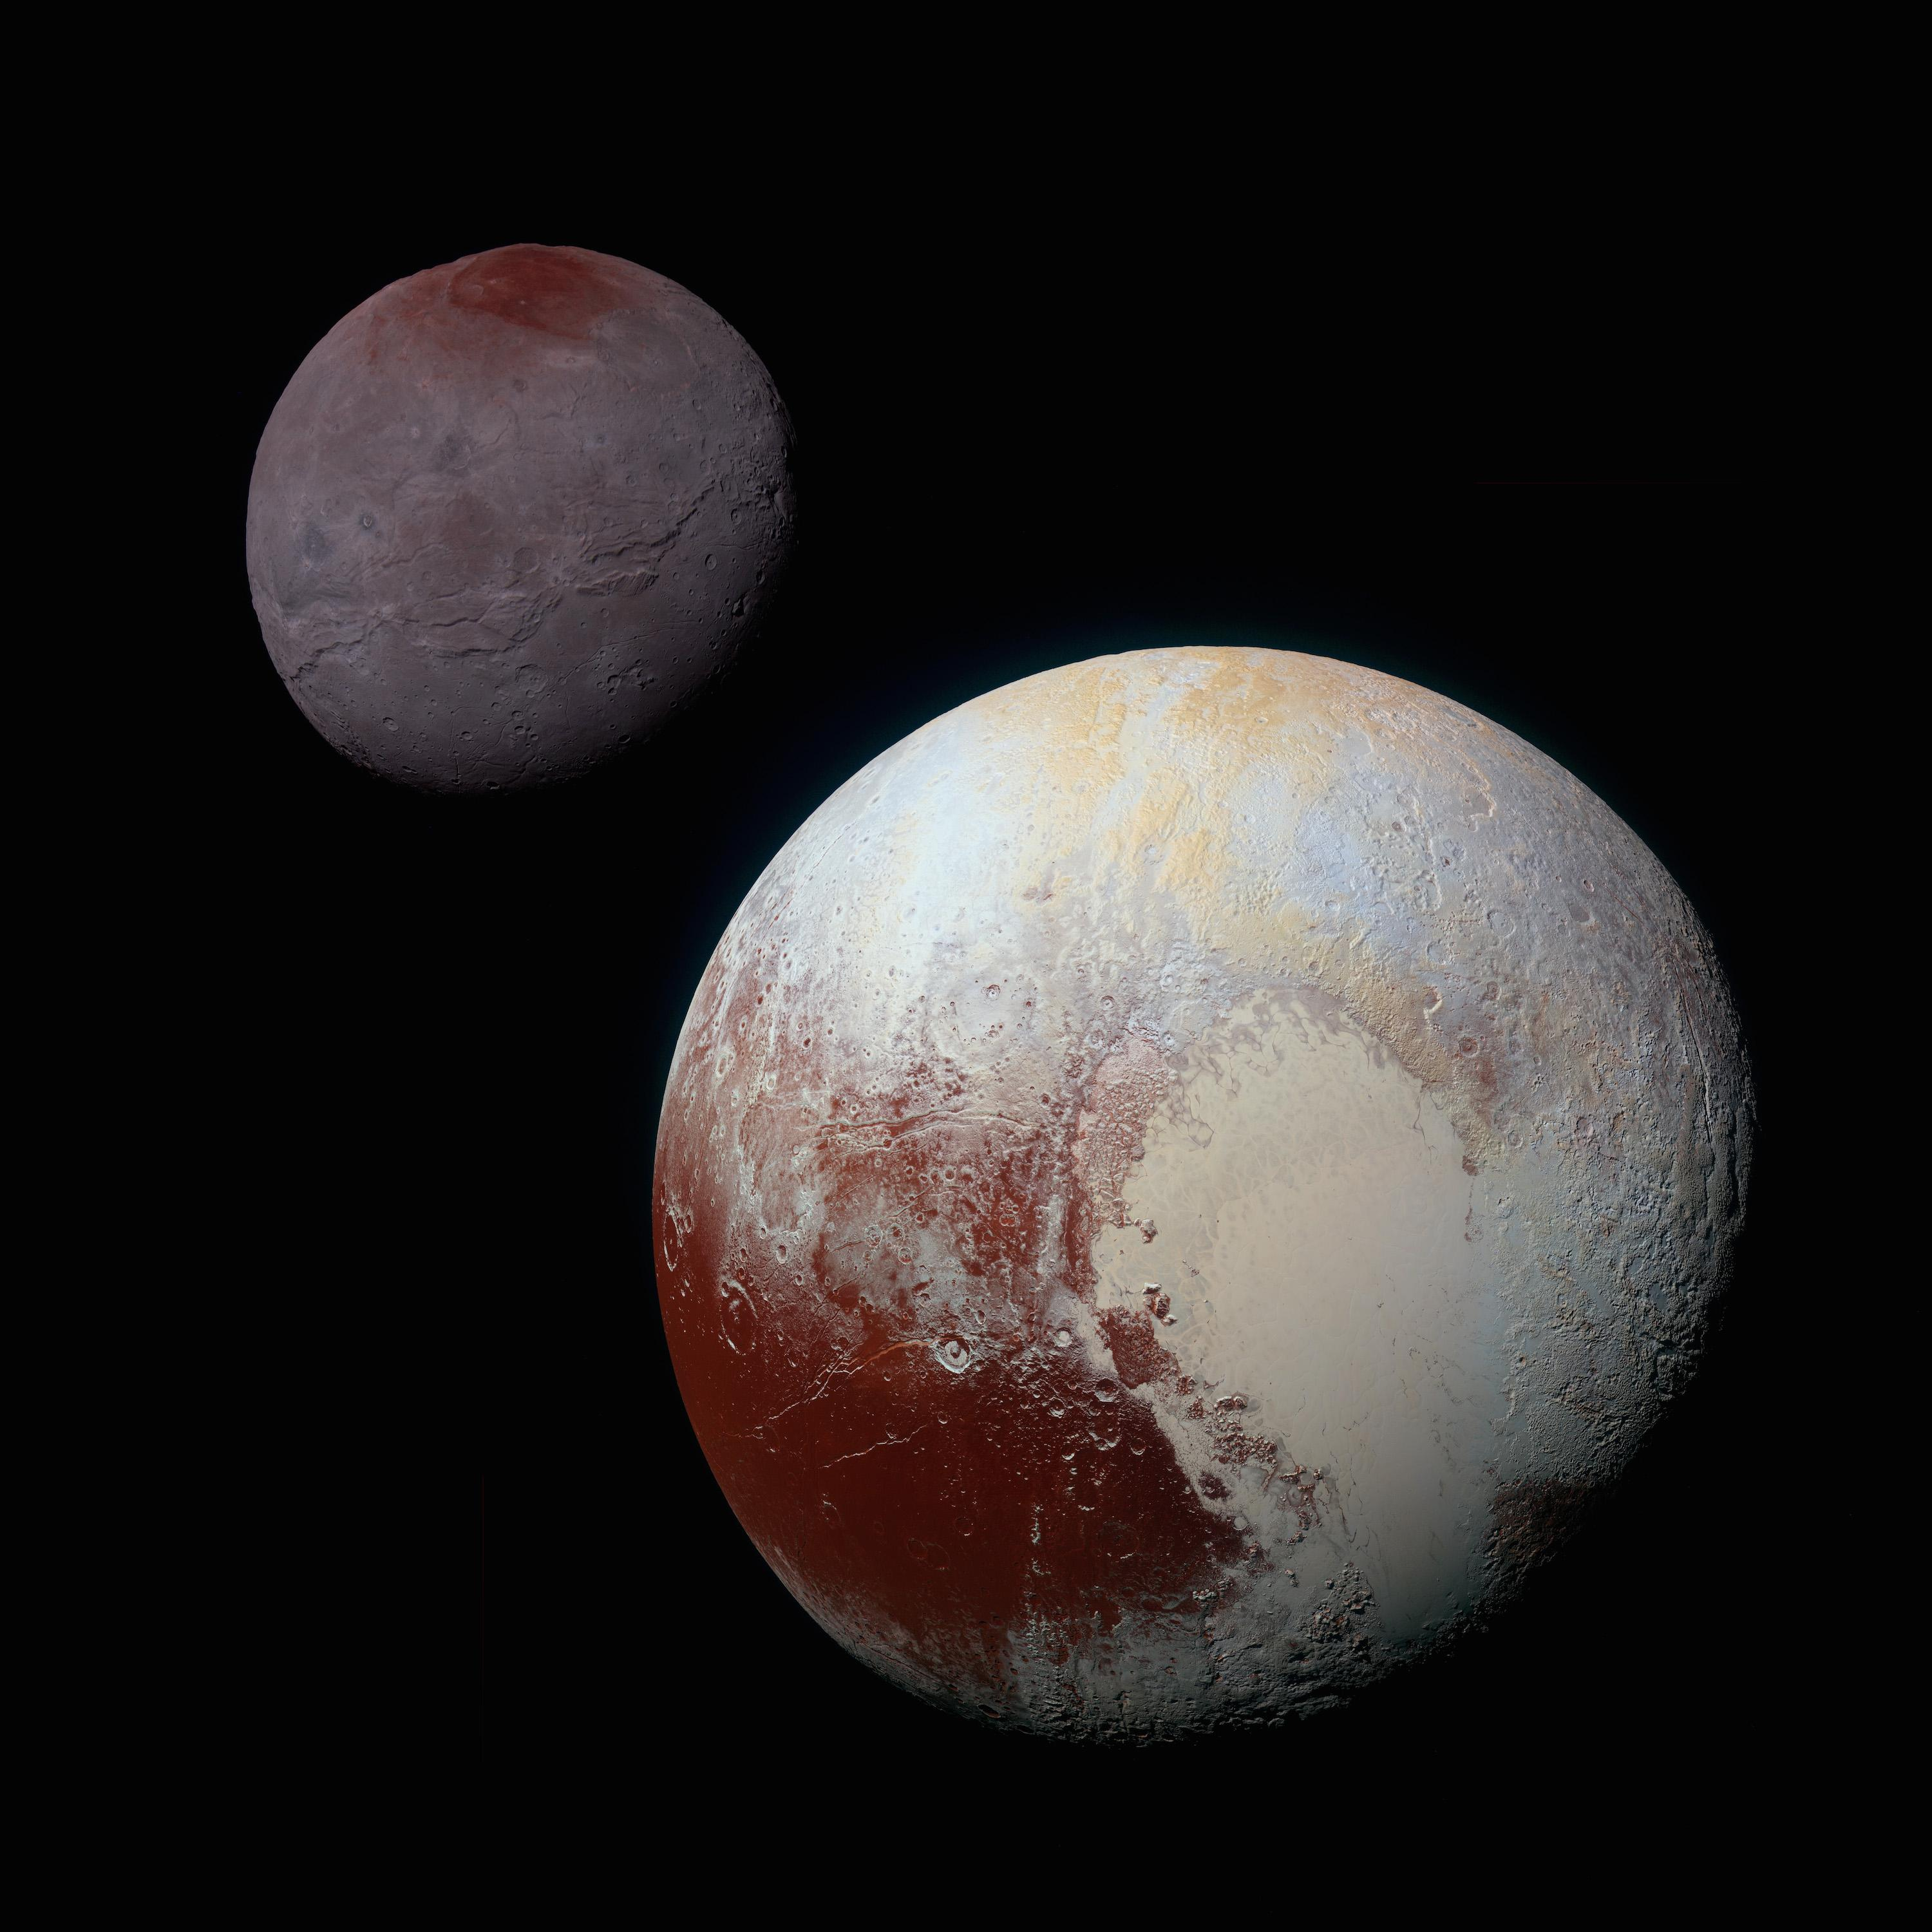 Pluto and Charon, identically enhanced and processed. Courtesy of NASA/JHUAPL/SwRI